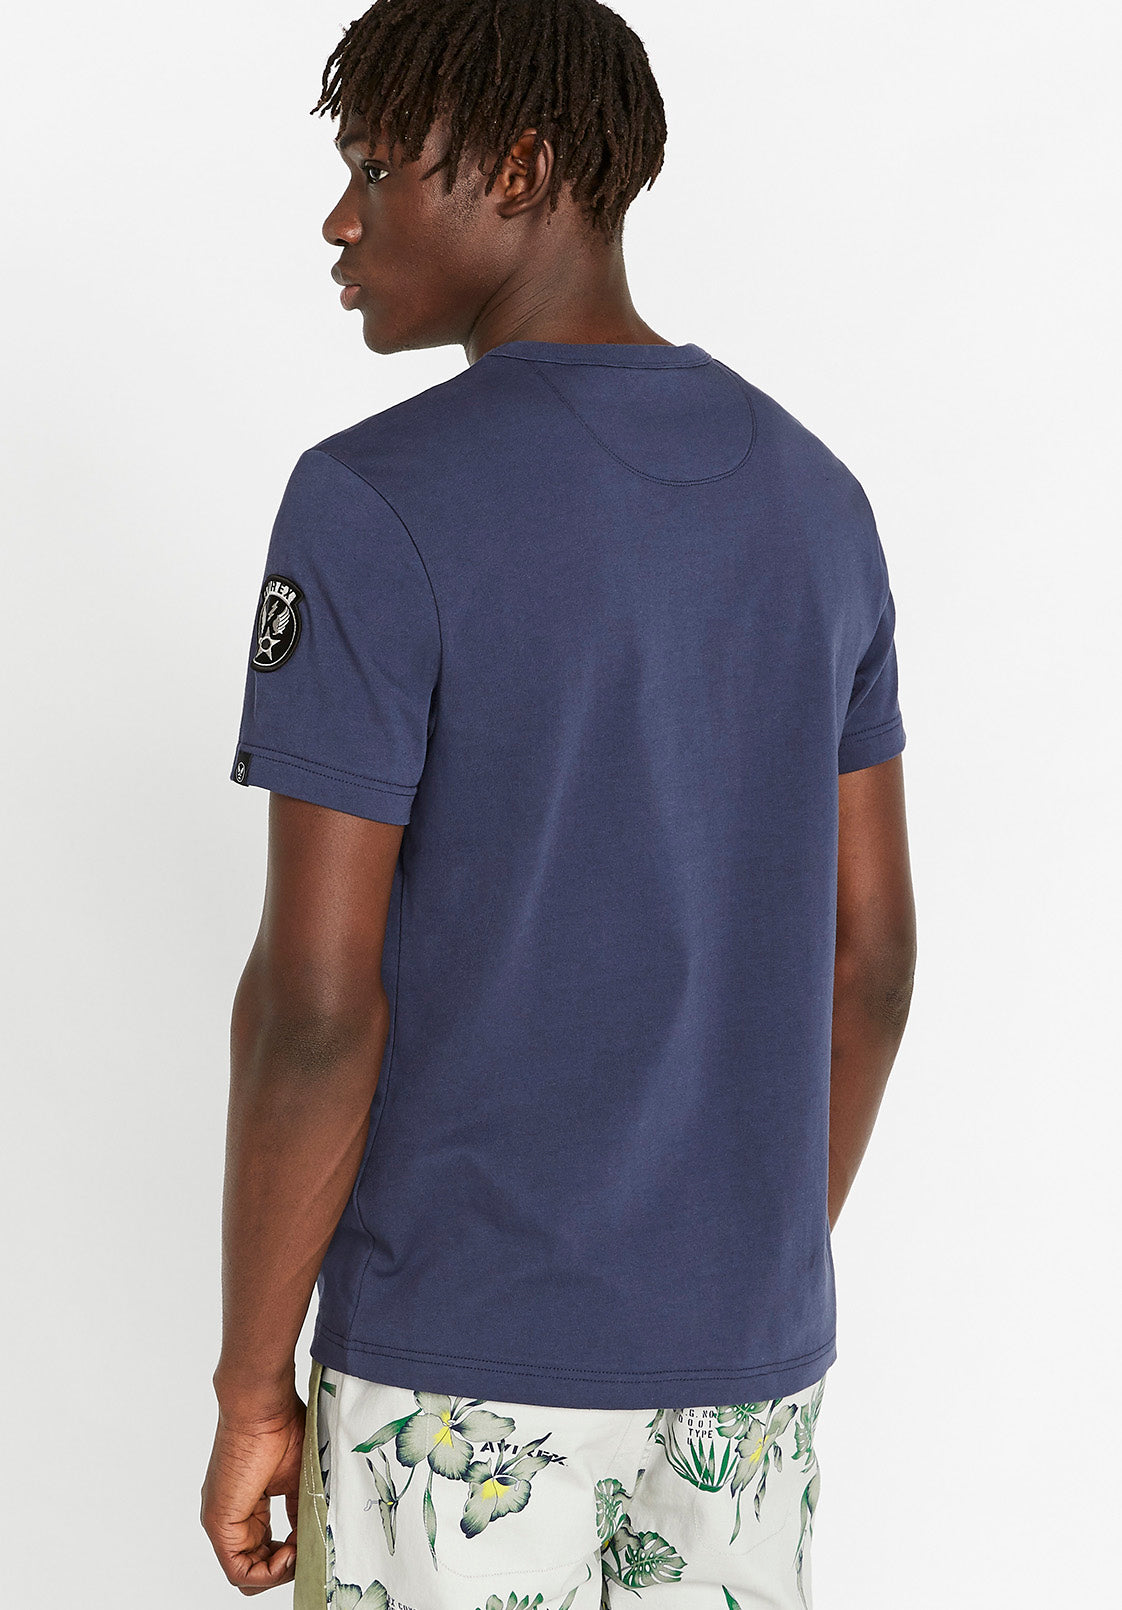 Back view of men wearing an indigo t-shirt with Wingstar patch logo on left arm